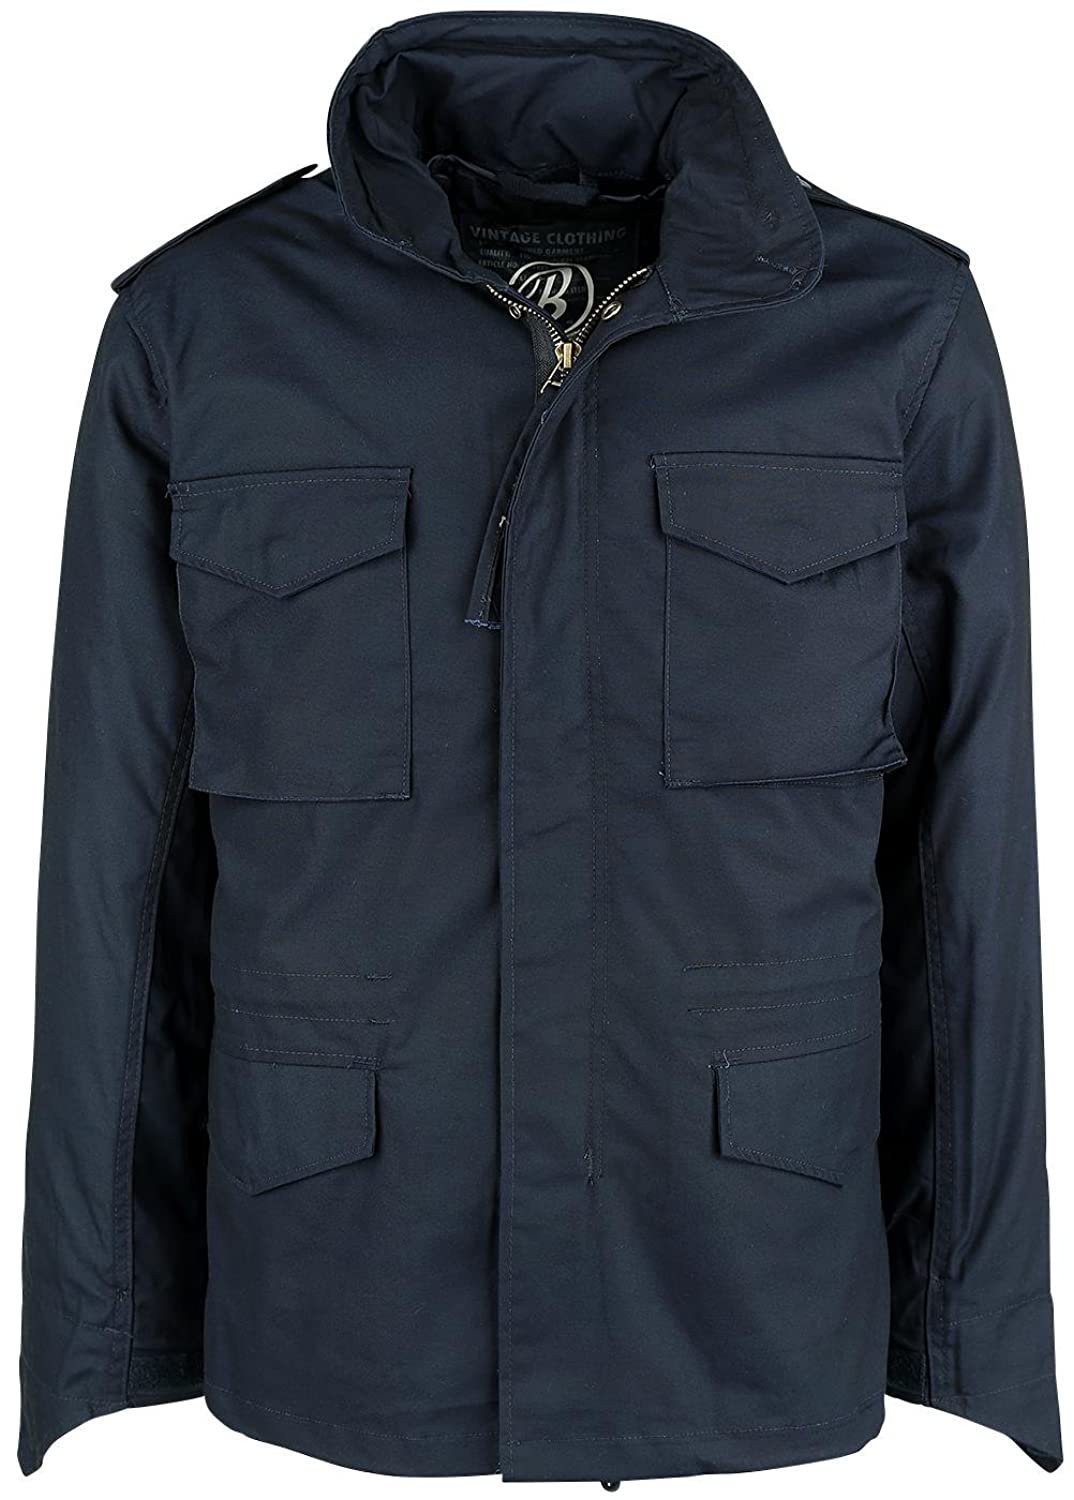 Men's m 65 explorer jacket